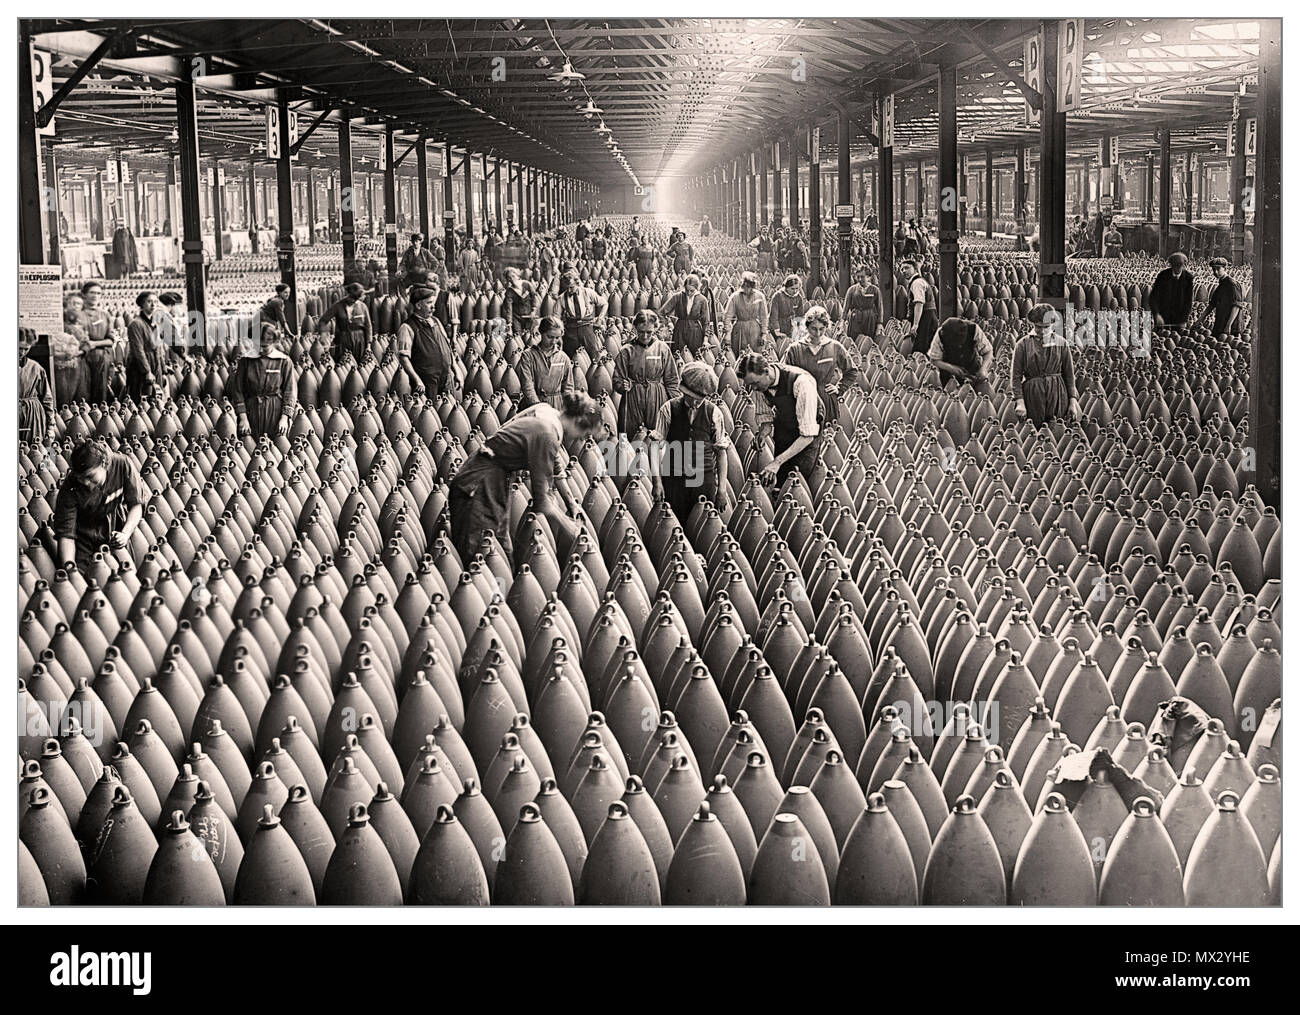 World War 1 Shells Ammunitions Factory UK The Chilwell munitions filling factory, Britain, WW1 More than 19 million shells were filled with explosives here by 10,000 workers between 1915-1918, during World War 1. The factory filled over half of all British shells during the Great War. - Stock Image